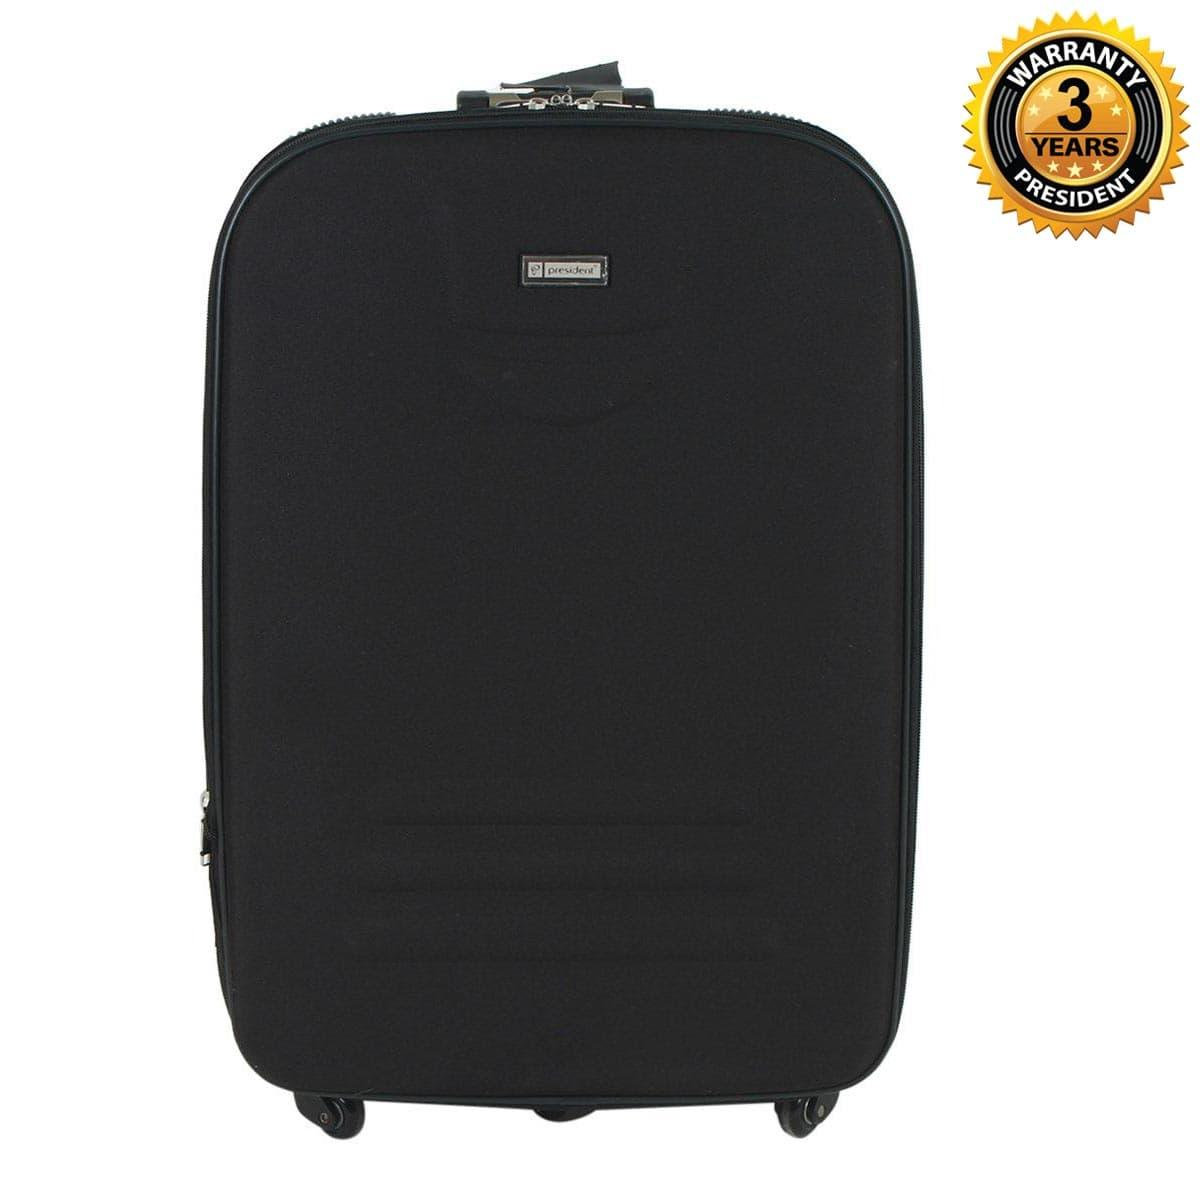 6a02bba10265 PRESIDENT 28 Inch Carry On Luggage Softside Spinner Luggage 4-Wheels  Suitcase Built-in YiF TSA Lock -Black